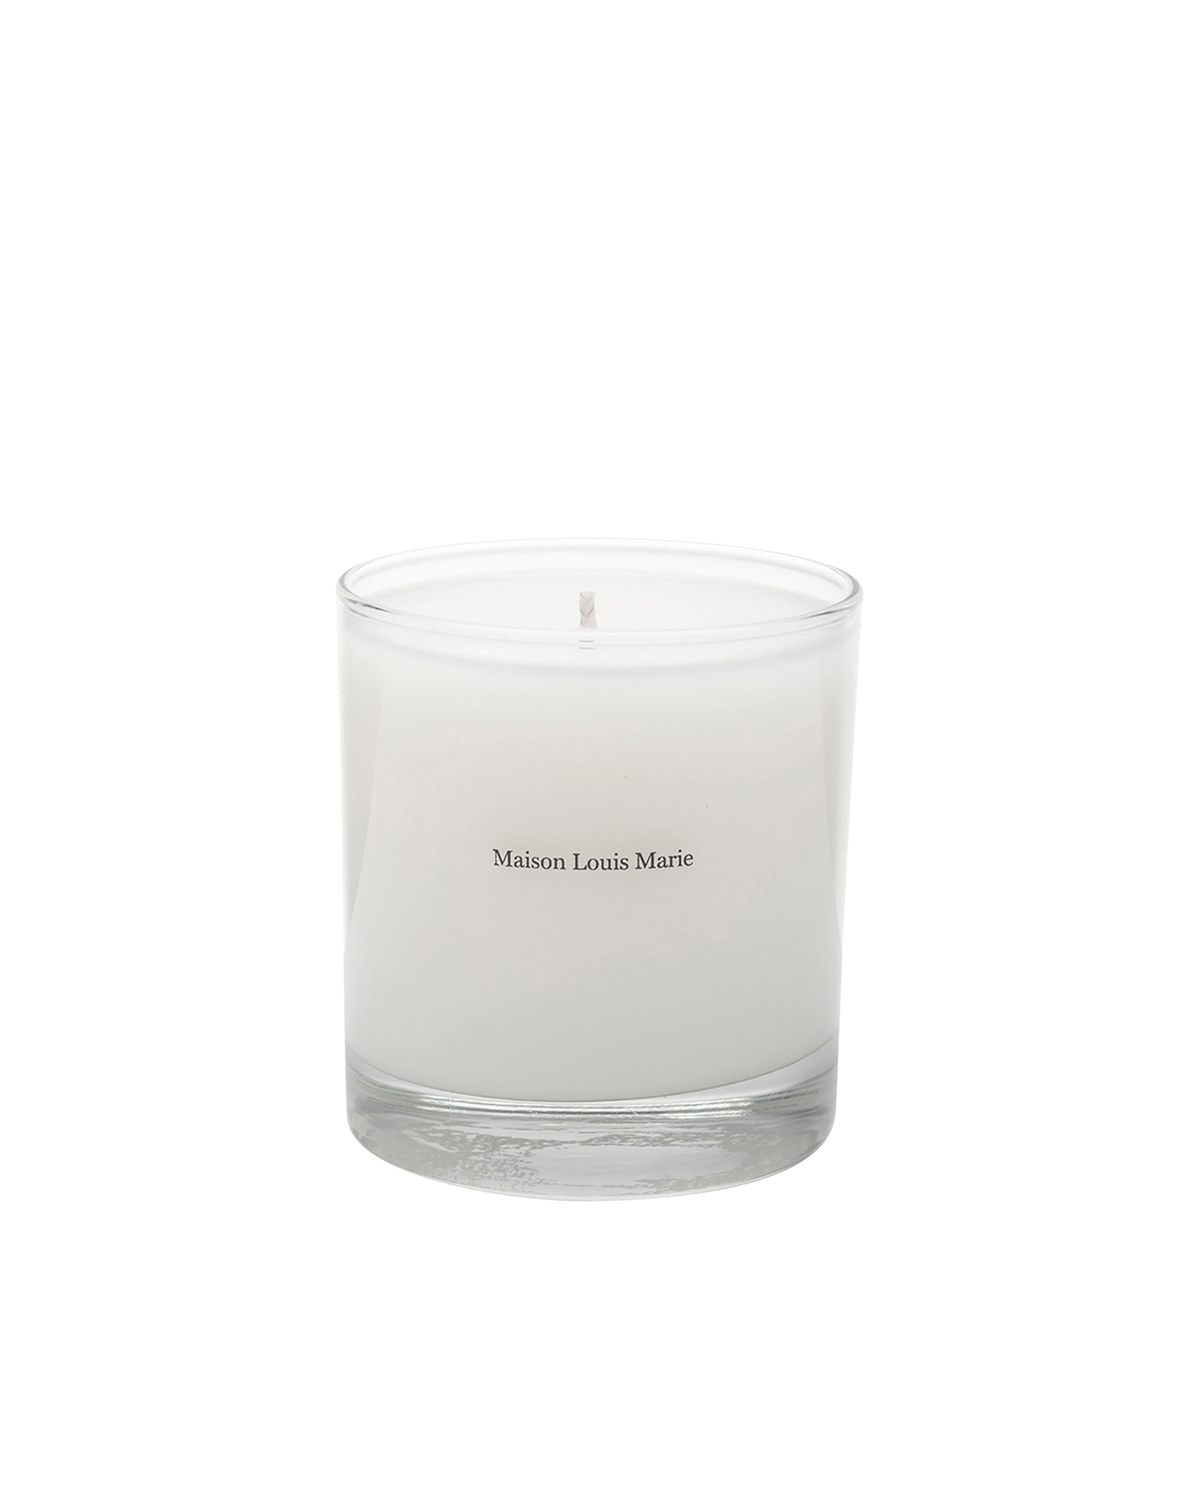 No. 09 Vallee de Farney, Candle with Gift Box